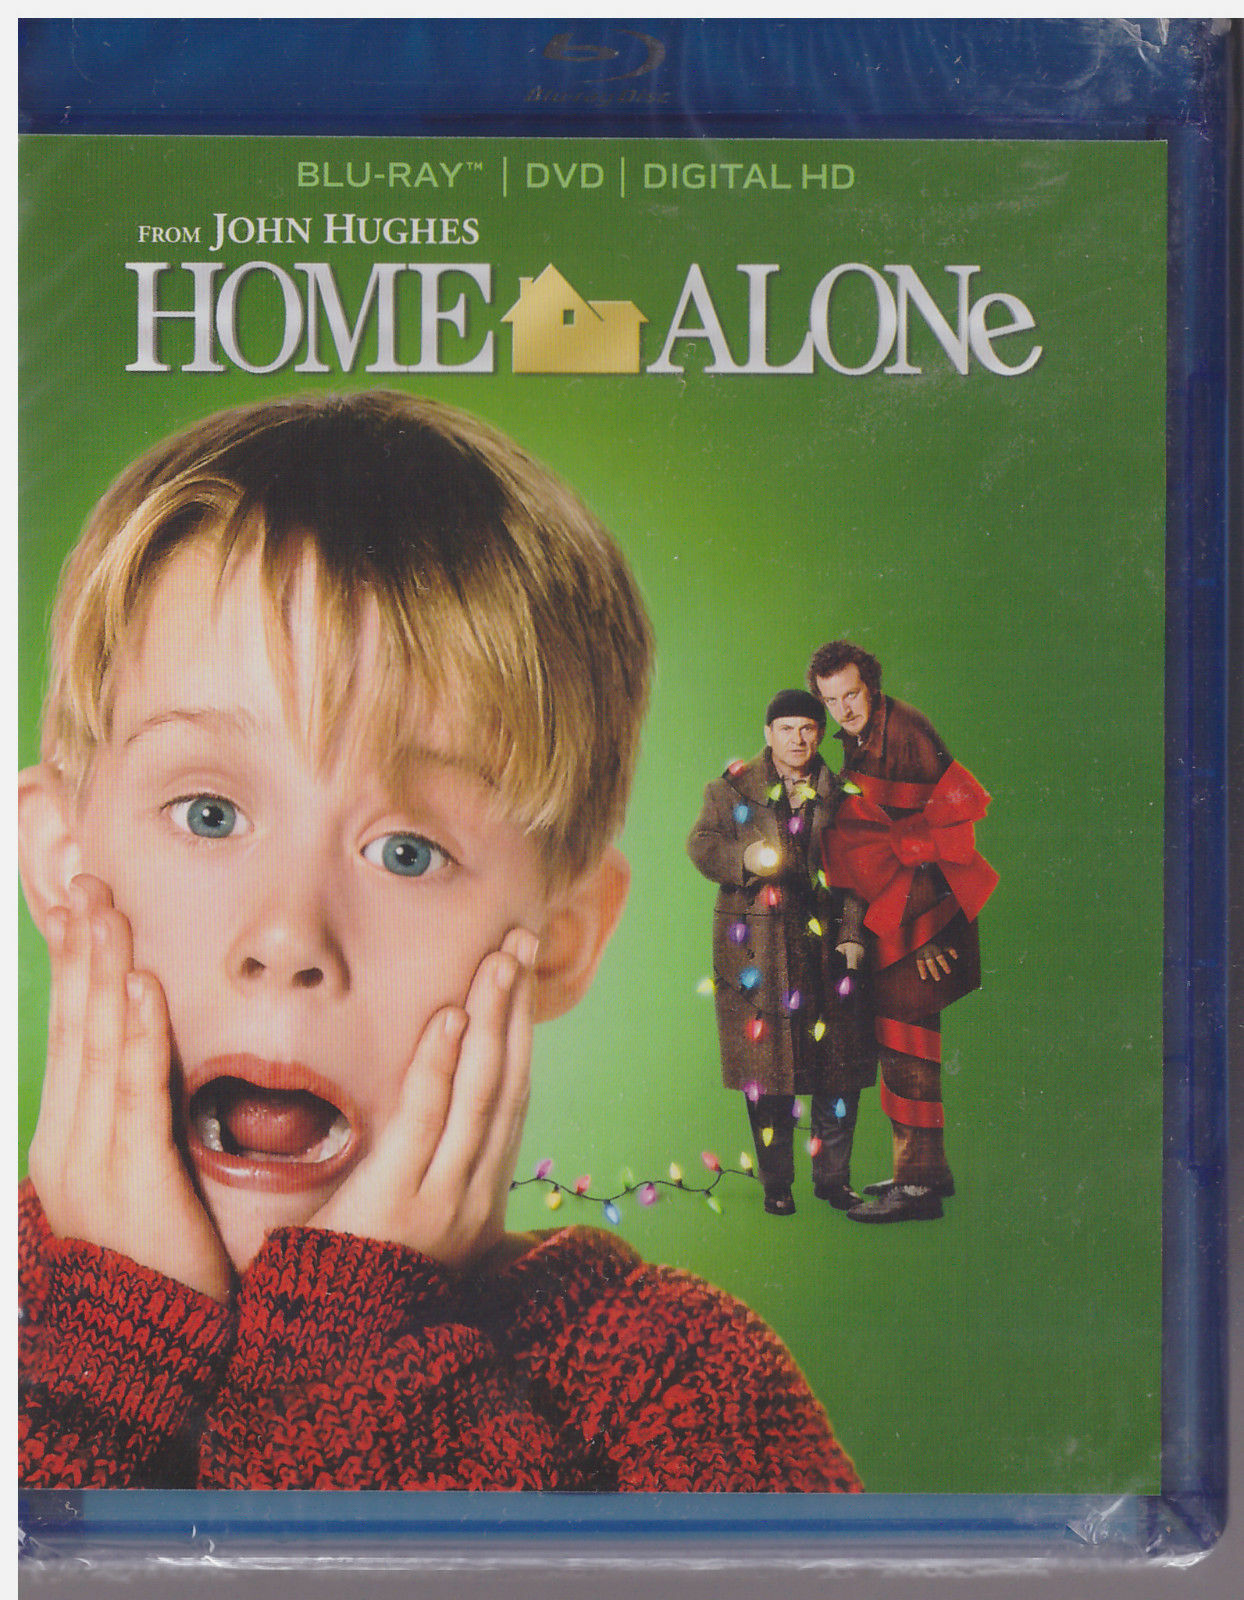 Home Alone Blu-ray 3